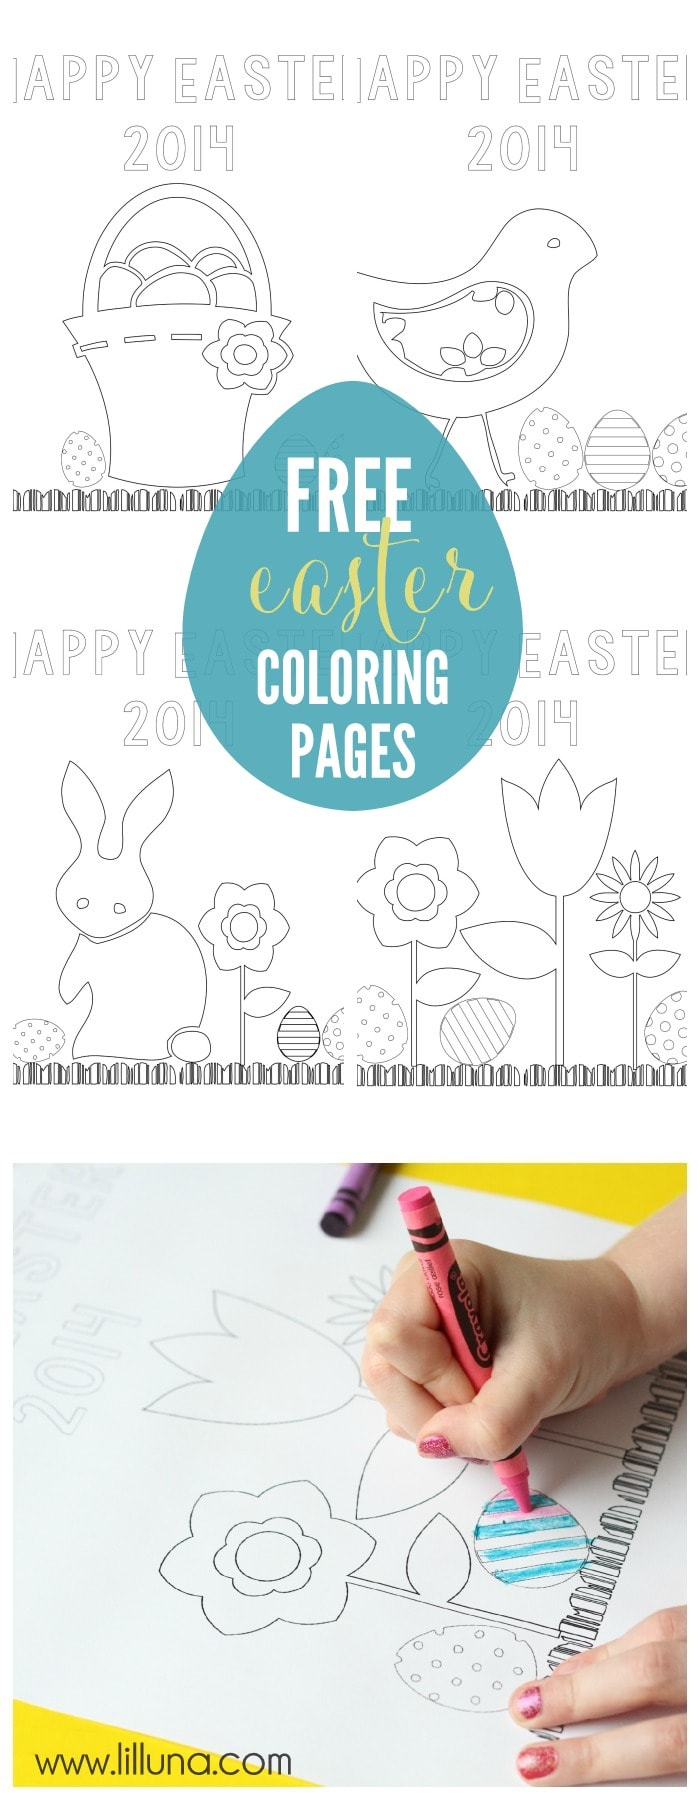 Free Easter Coloring Pages - perfect for the kiddos on Easter Day! { lilluna.com }